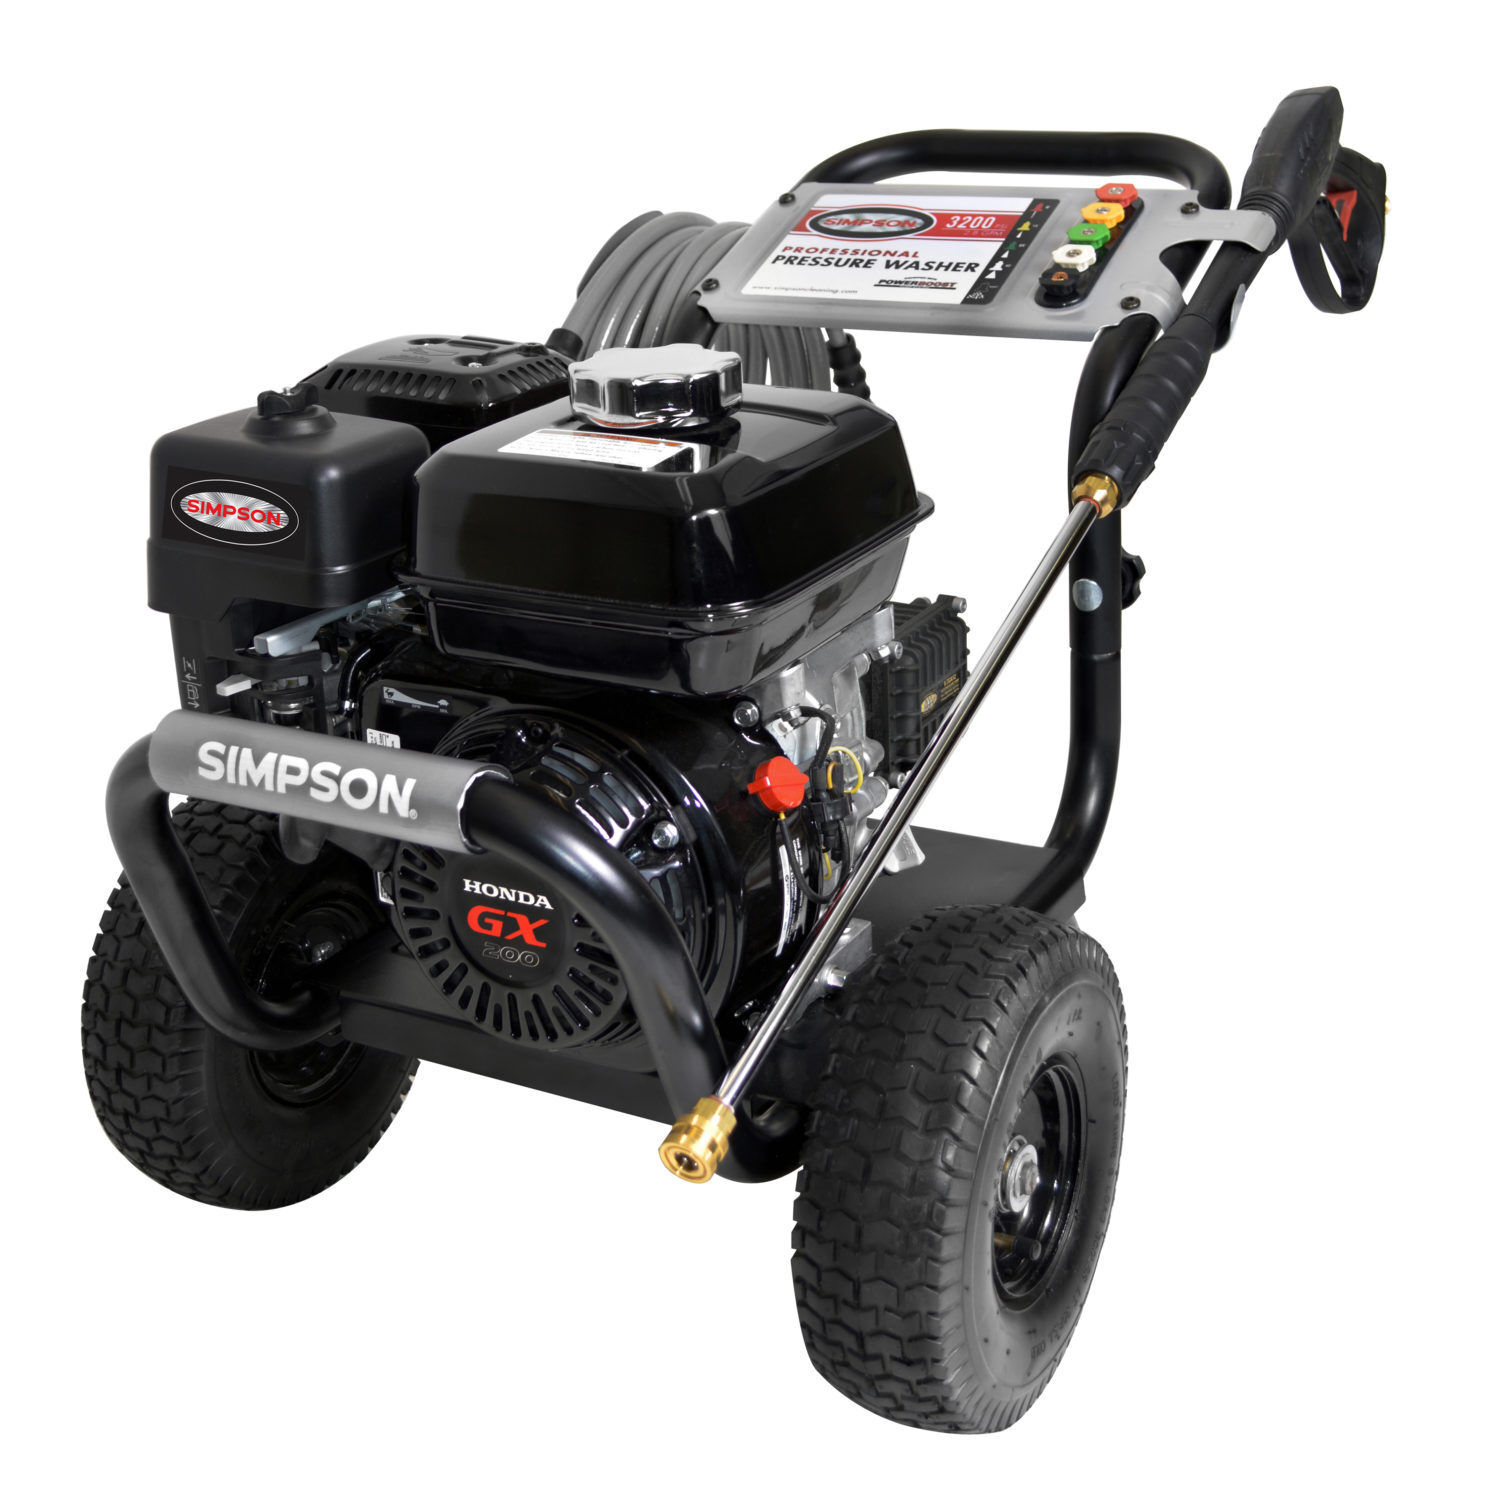 SIMPSON PS3228-S 3300 PSI @ 2.5 GPM Honda Pressure Washer -